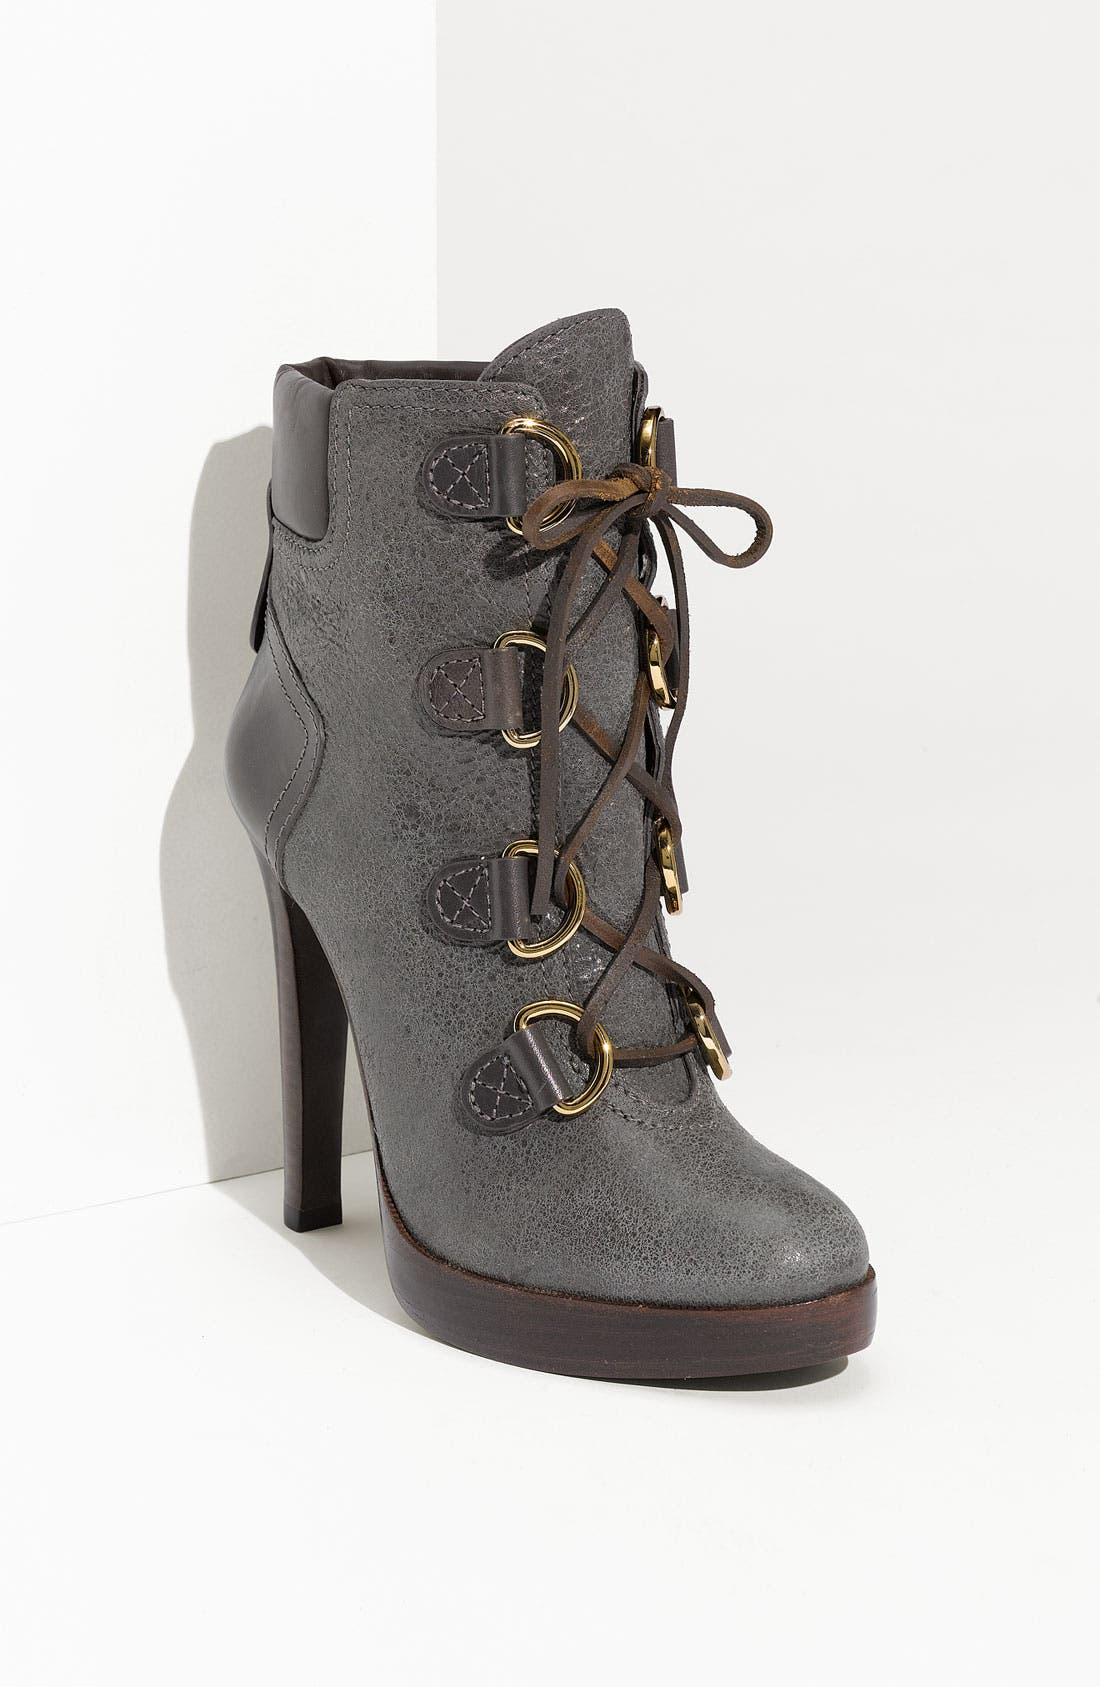 Alternate Image 1 Selected - Tory Burch 'Lawson' Bootie